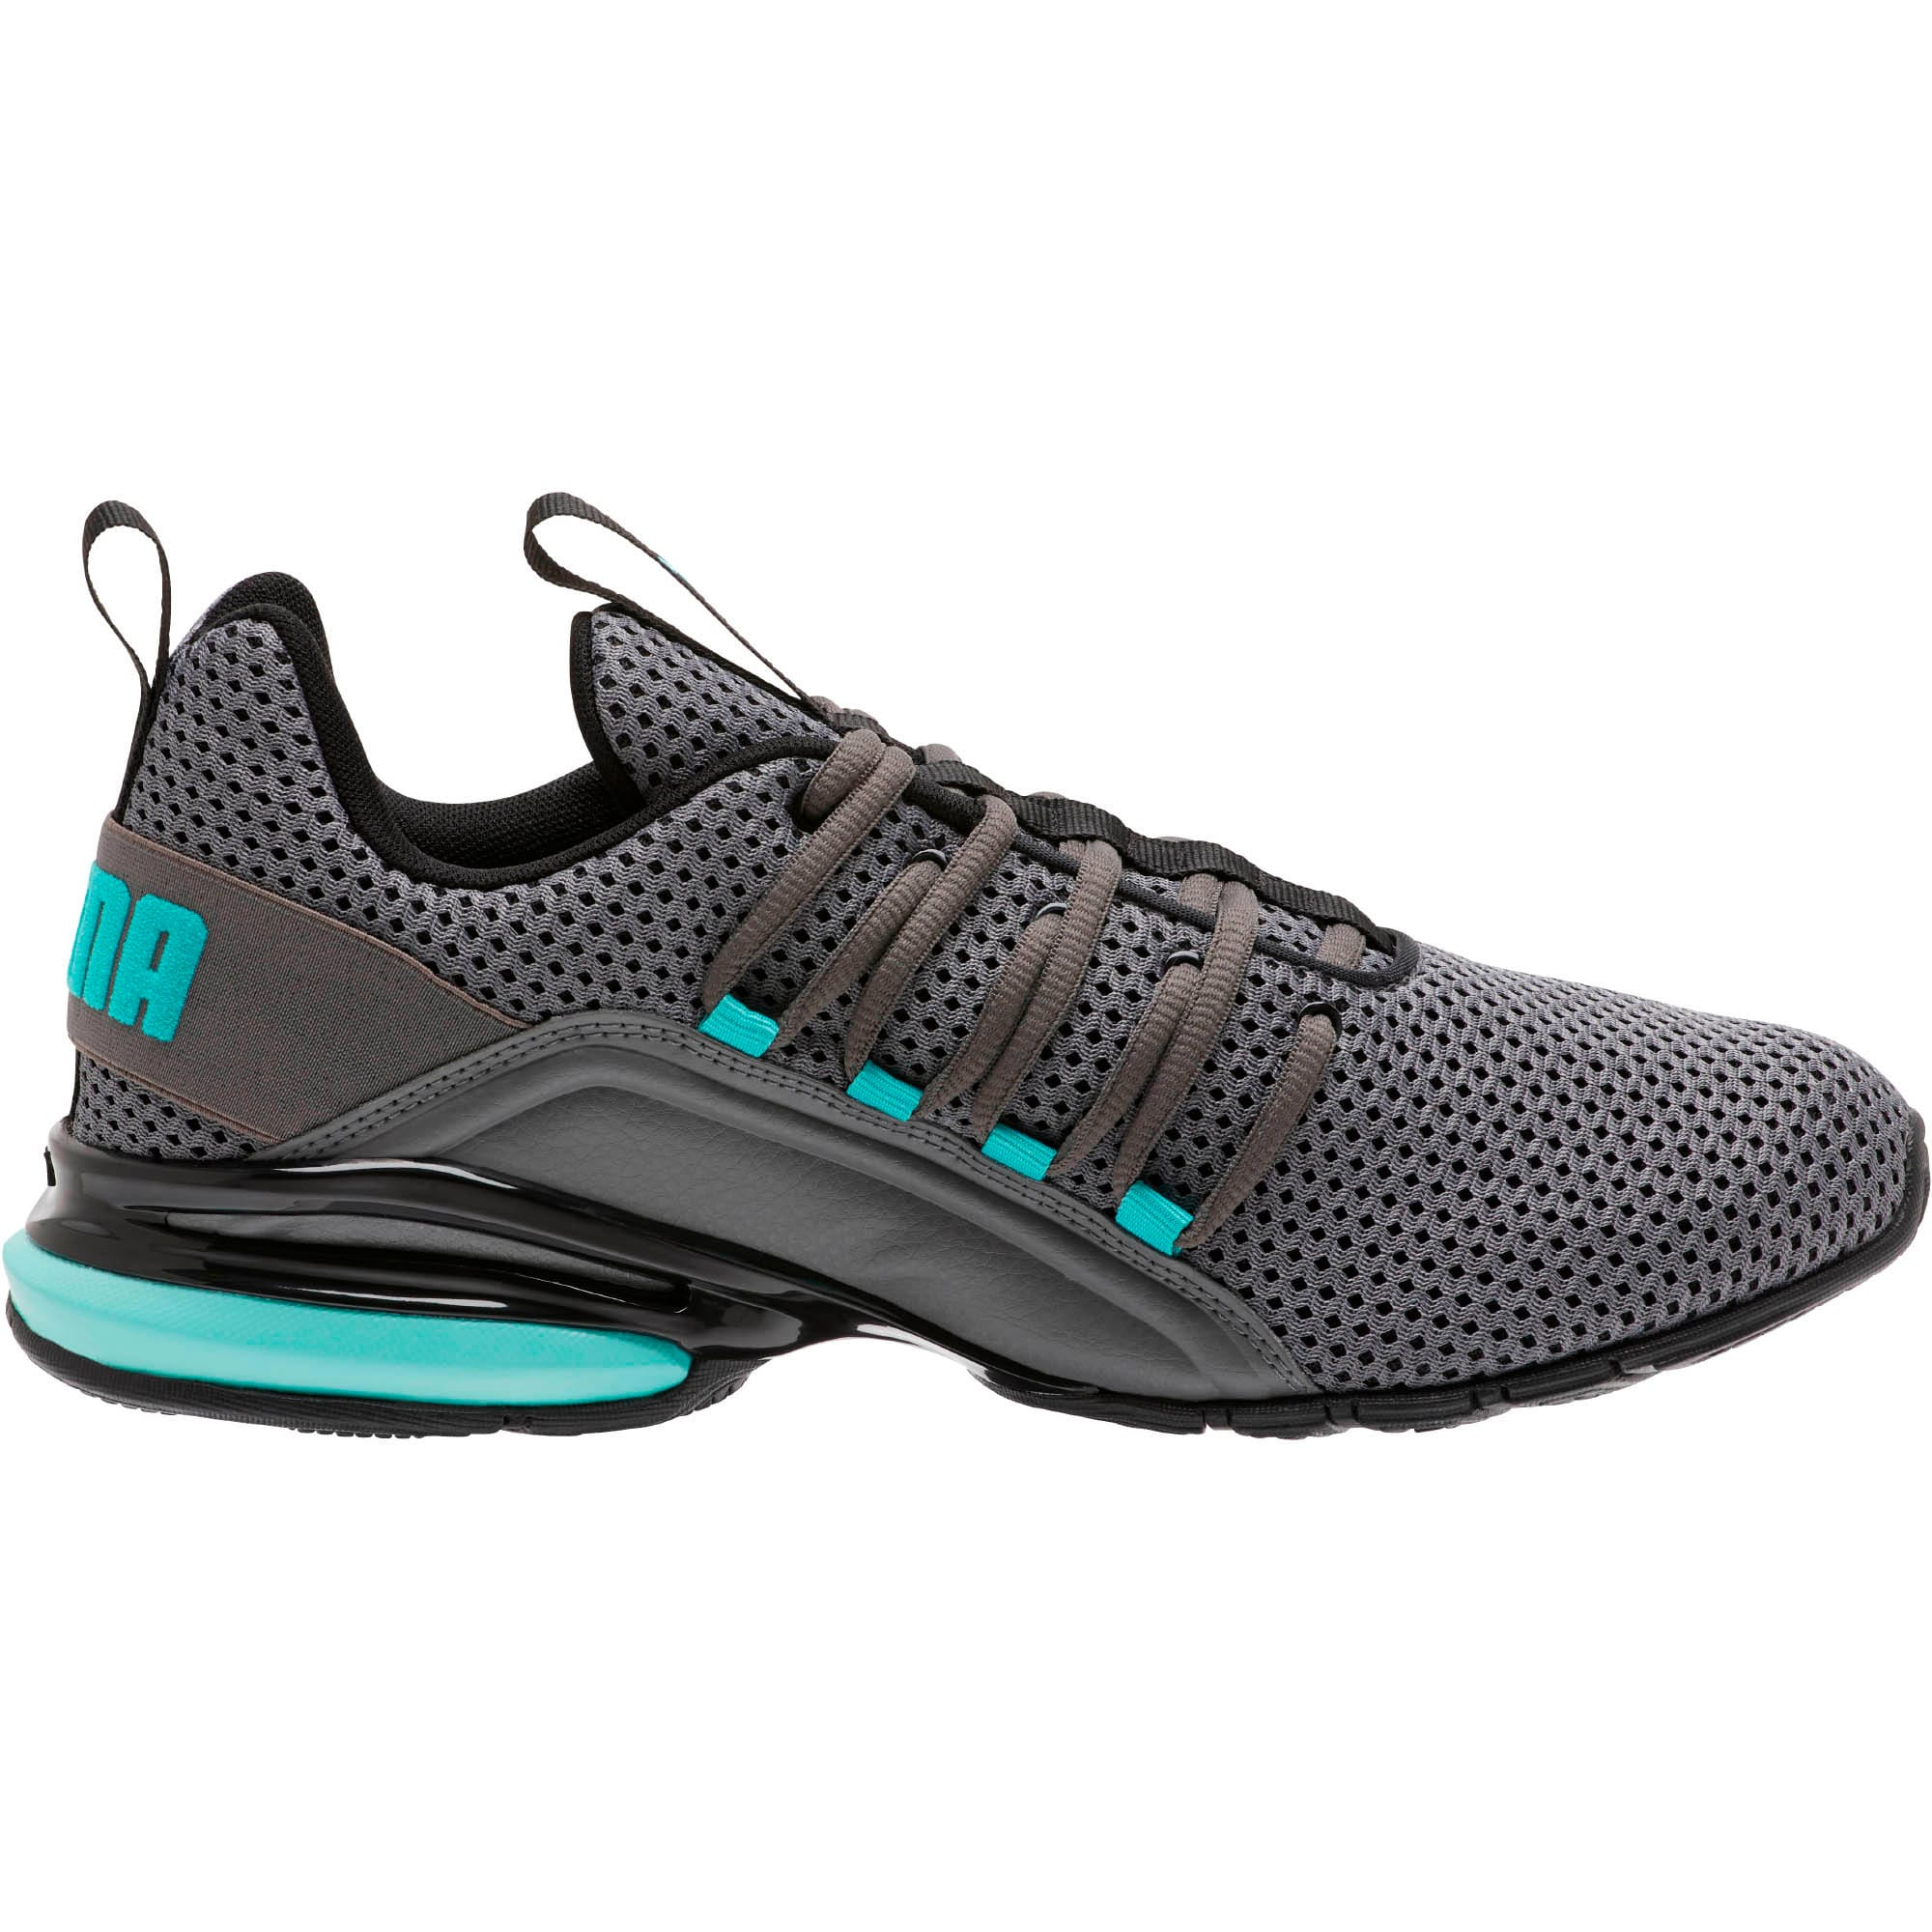 Thumbnail 4 of Axelion Breathe Men's Training Shoes, P Black-CASTLEROCK-Blue Turq, medium